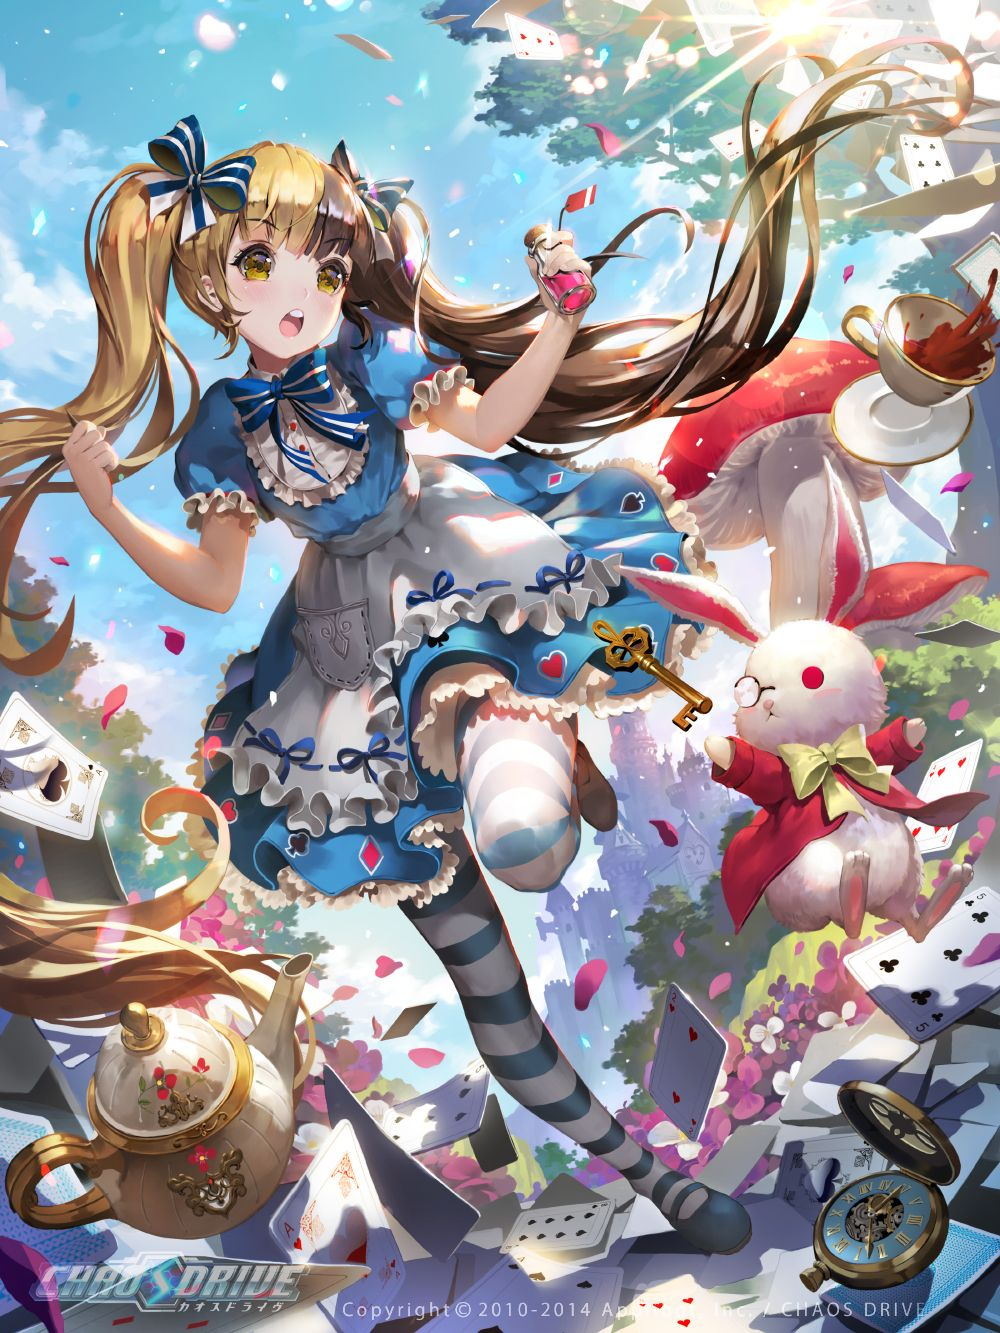 Artist Tobsua Alice in Wonderland Chaos Drive Alice